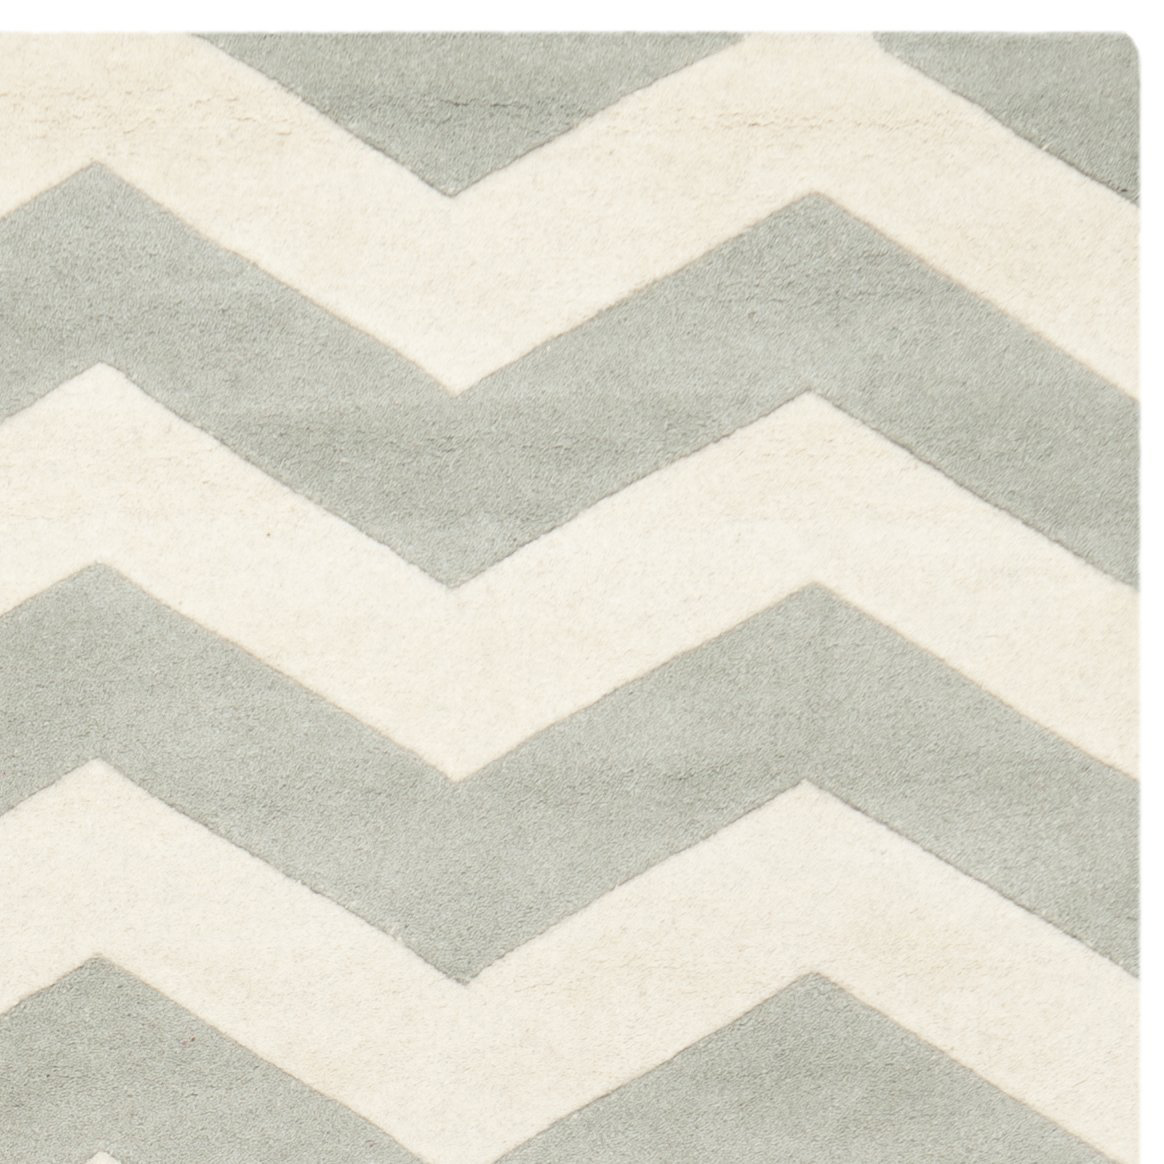 Grey And White Chevron 5x7 Area Rugs For Floor Decor Ideas